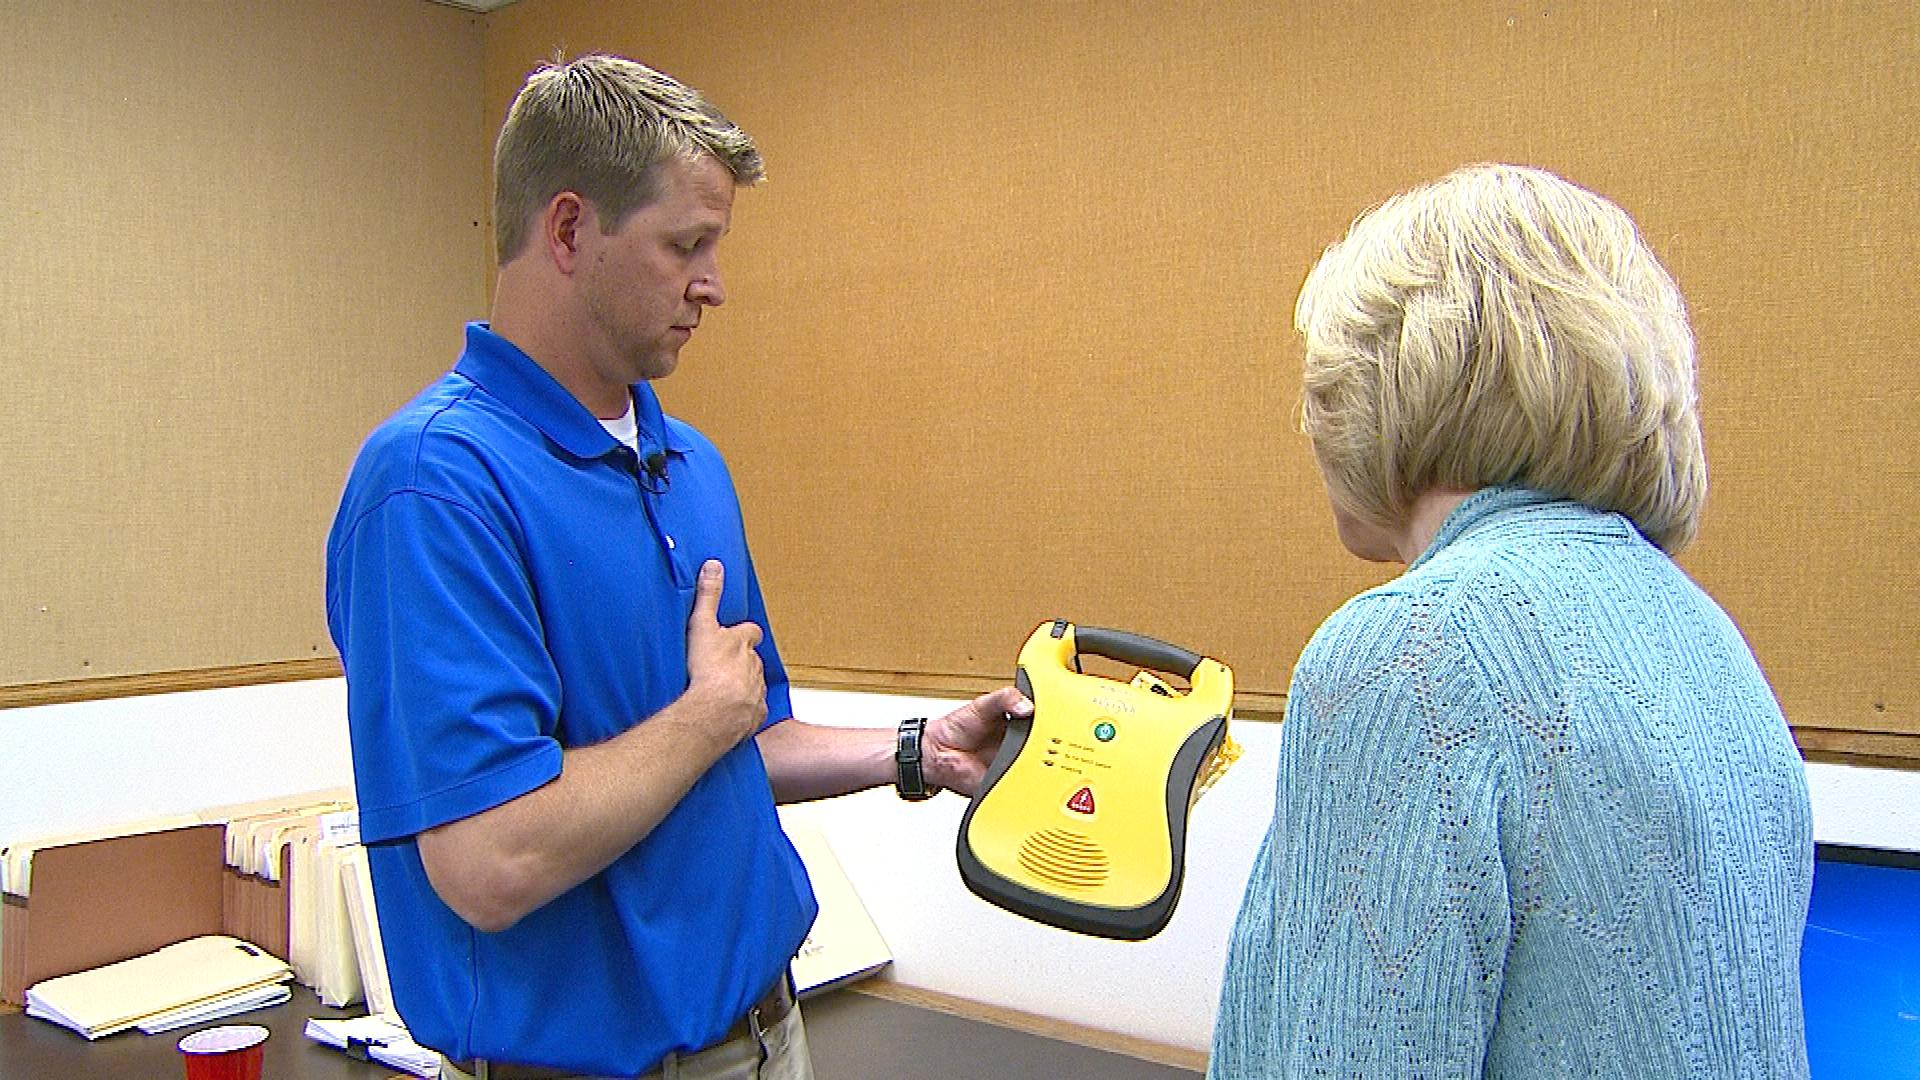 Cal Kelley show CBS4's Kathy Walsh their AED (credit: CBS)